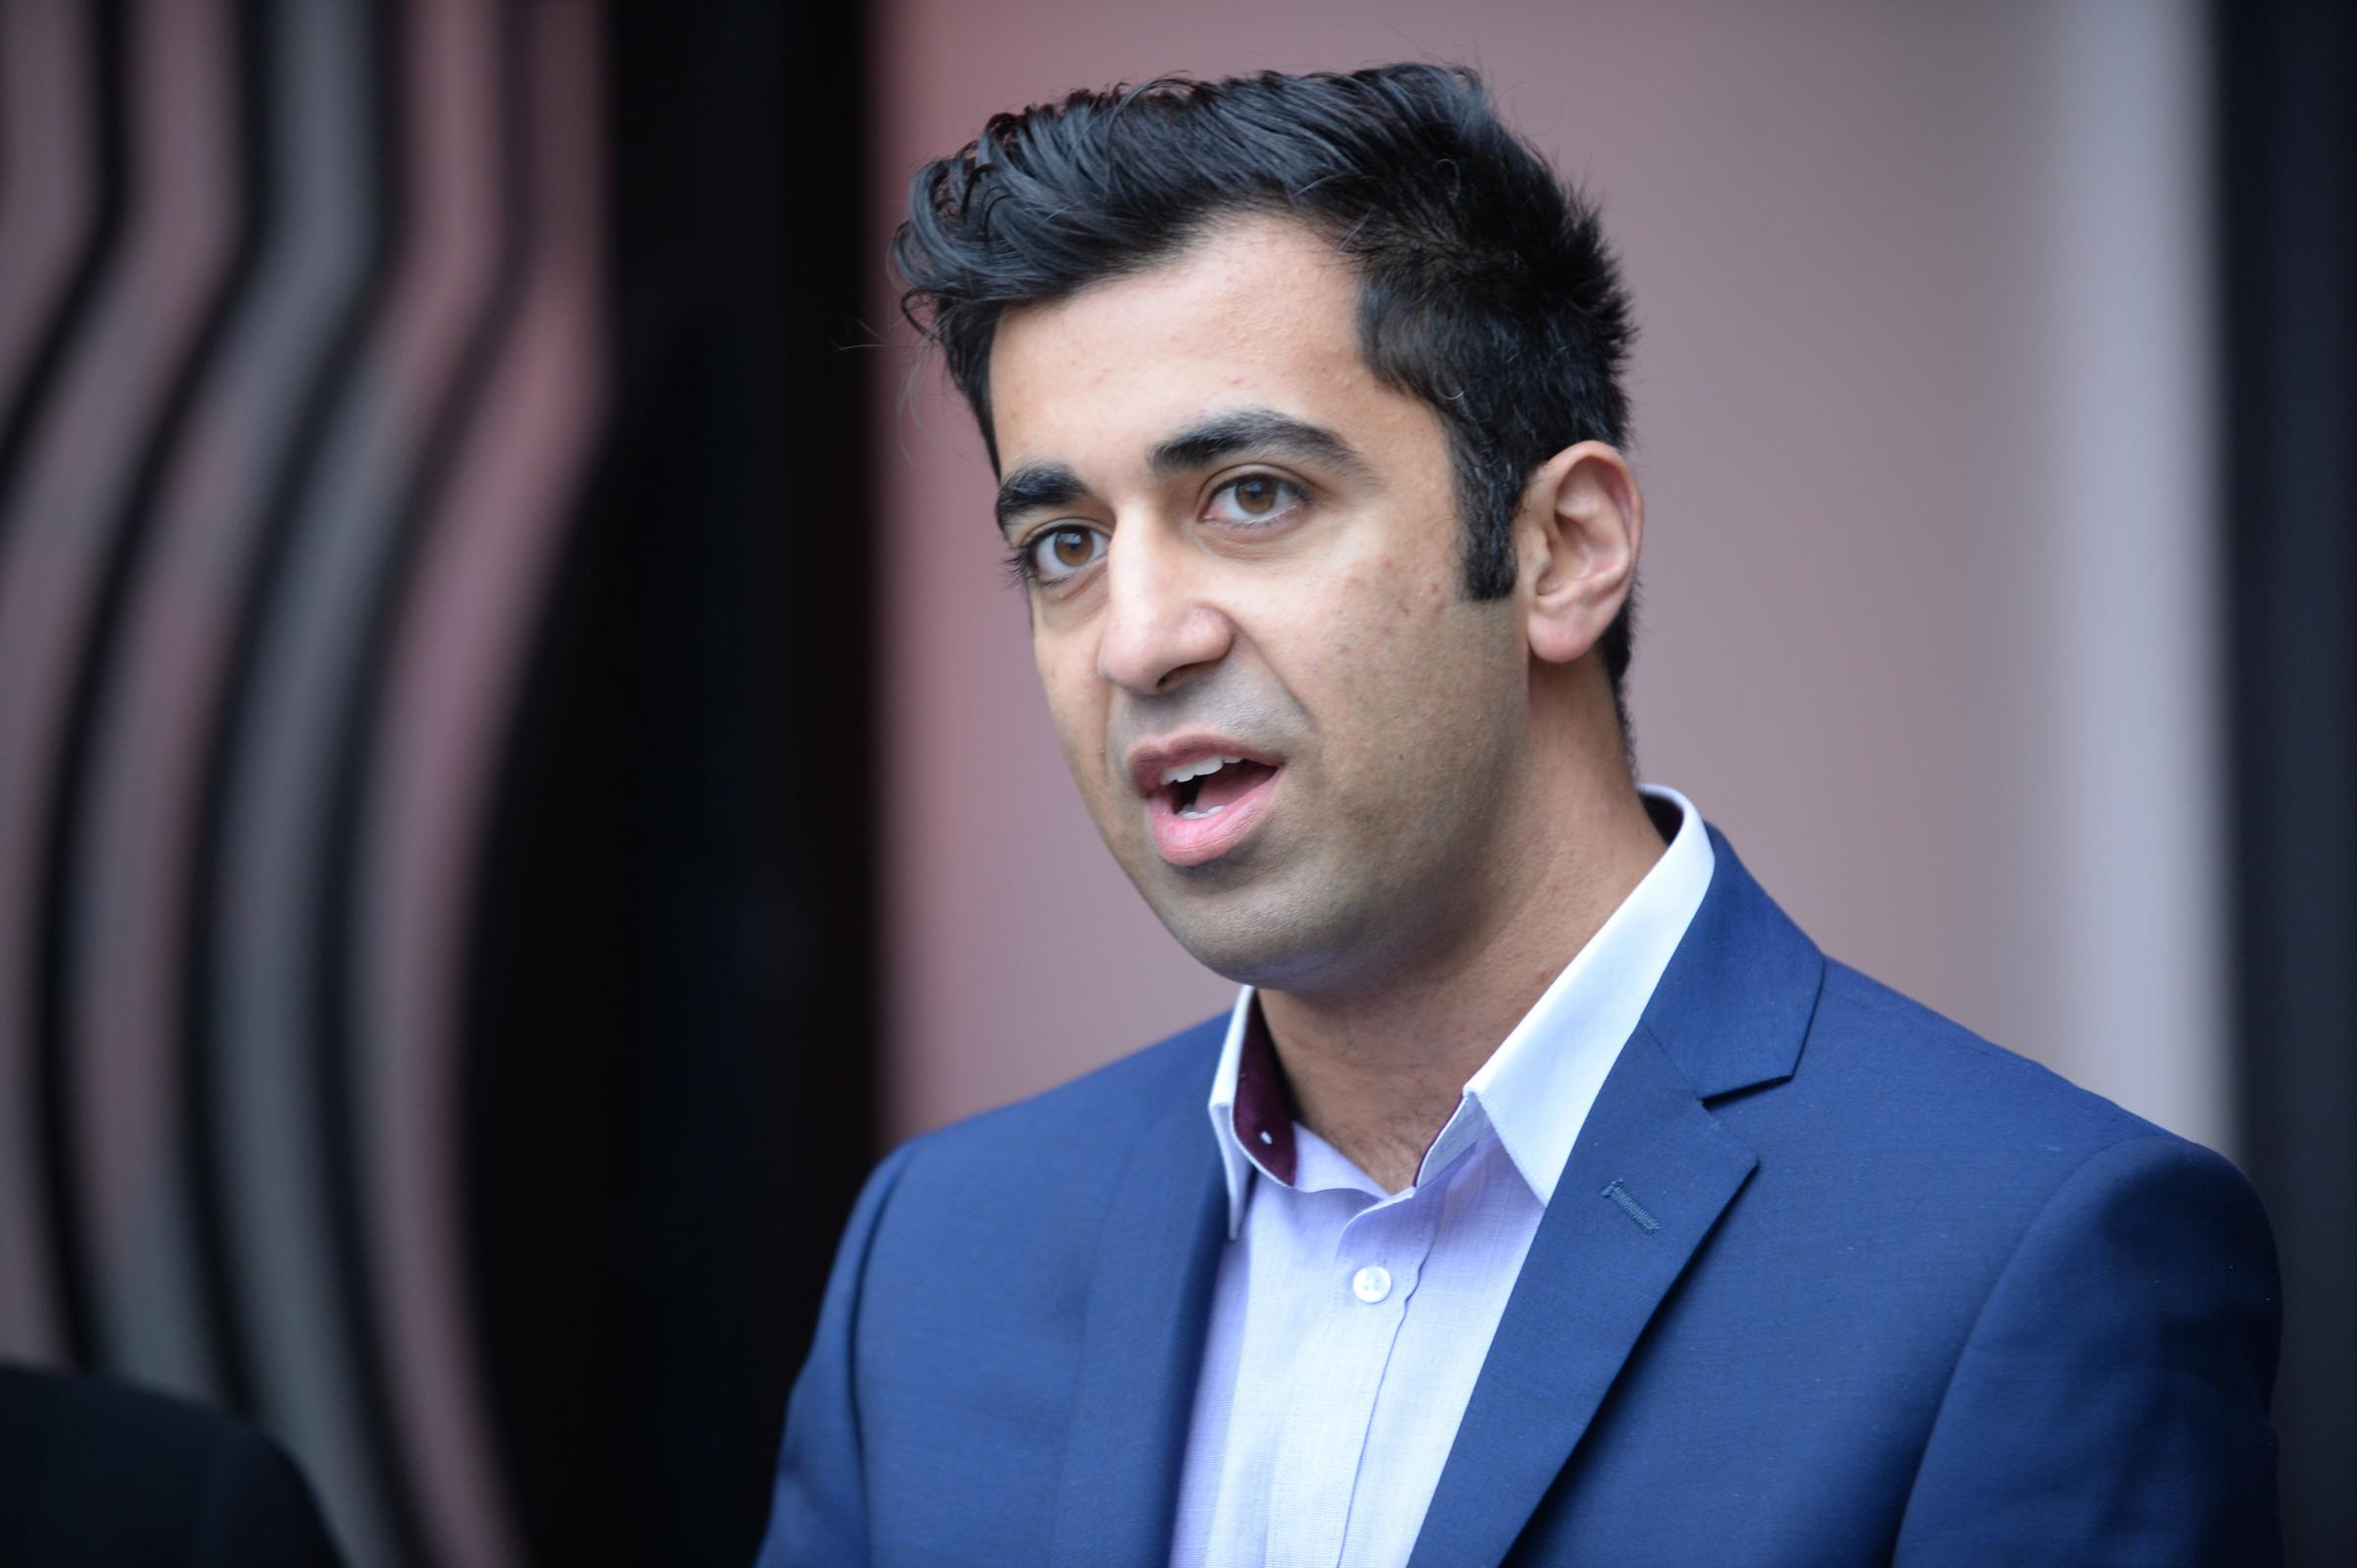 The winner of the Community Links PLUS design competition, which is backed by Sustrans Scotland and the Scottish Government was announced by the Minister for Transport and Islands, Humza Yousaf....12/08/16. (Photo by Kirsty Anderson/Herald & Times) - KA.